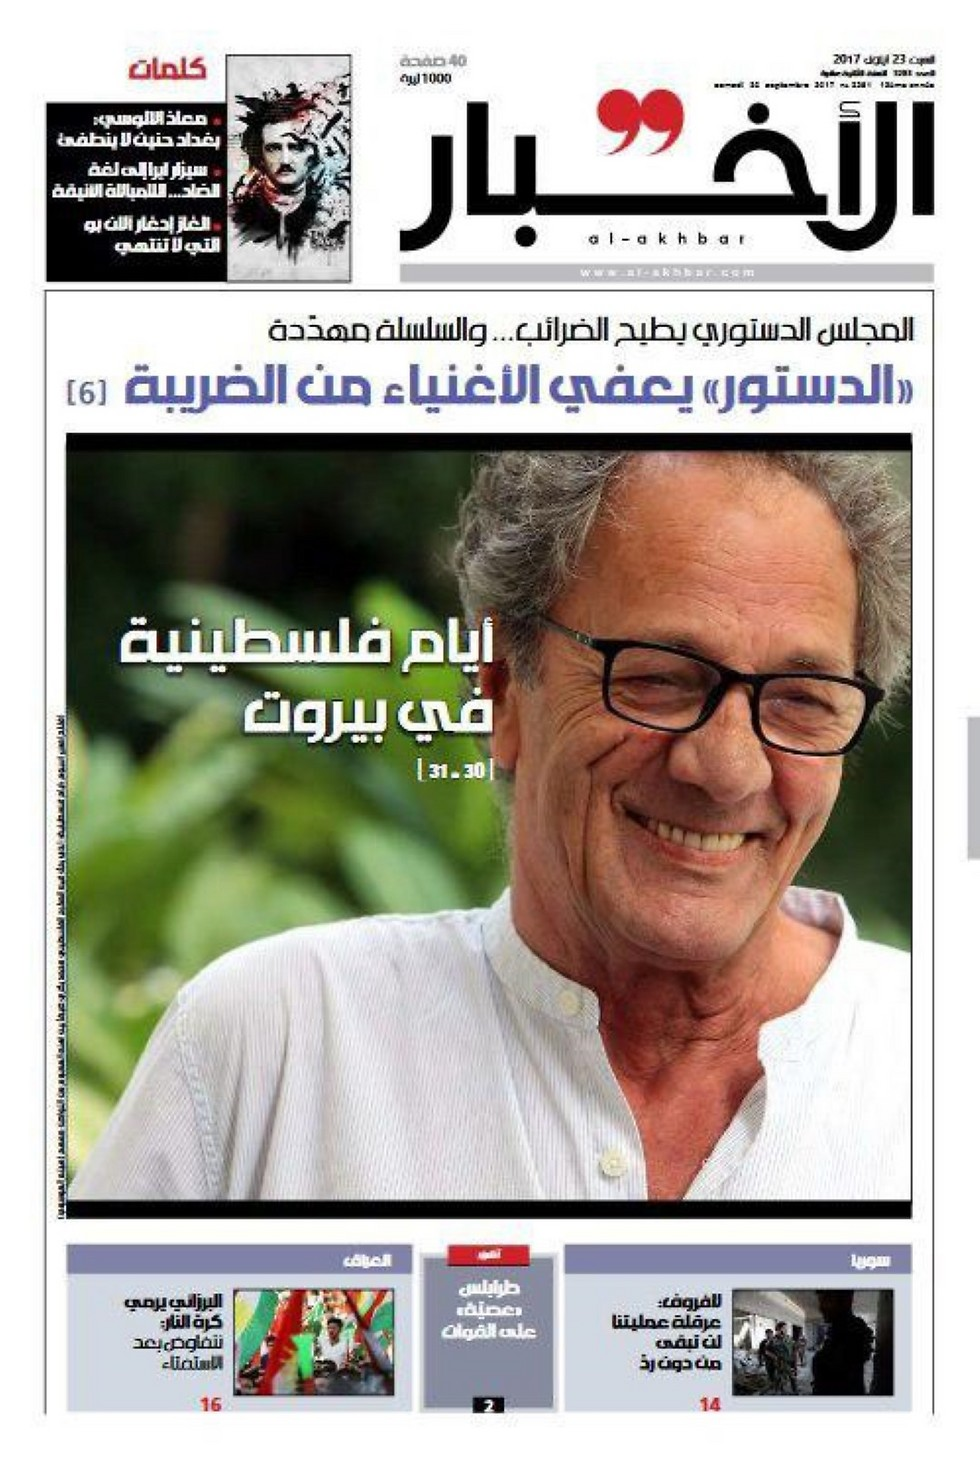 Mohammad Bakri on the cover of Al Akhbar